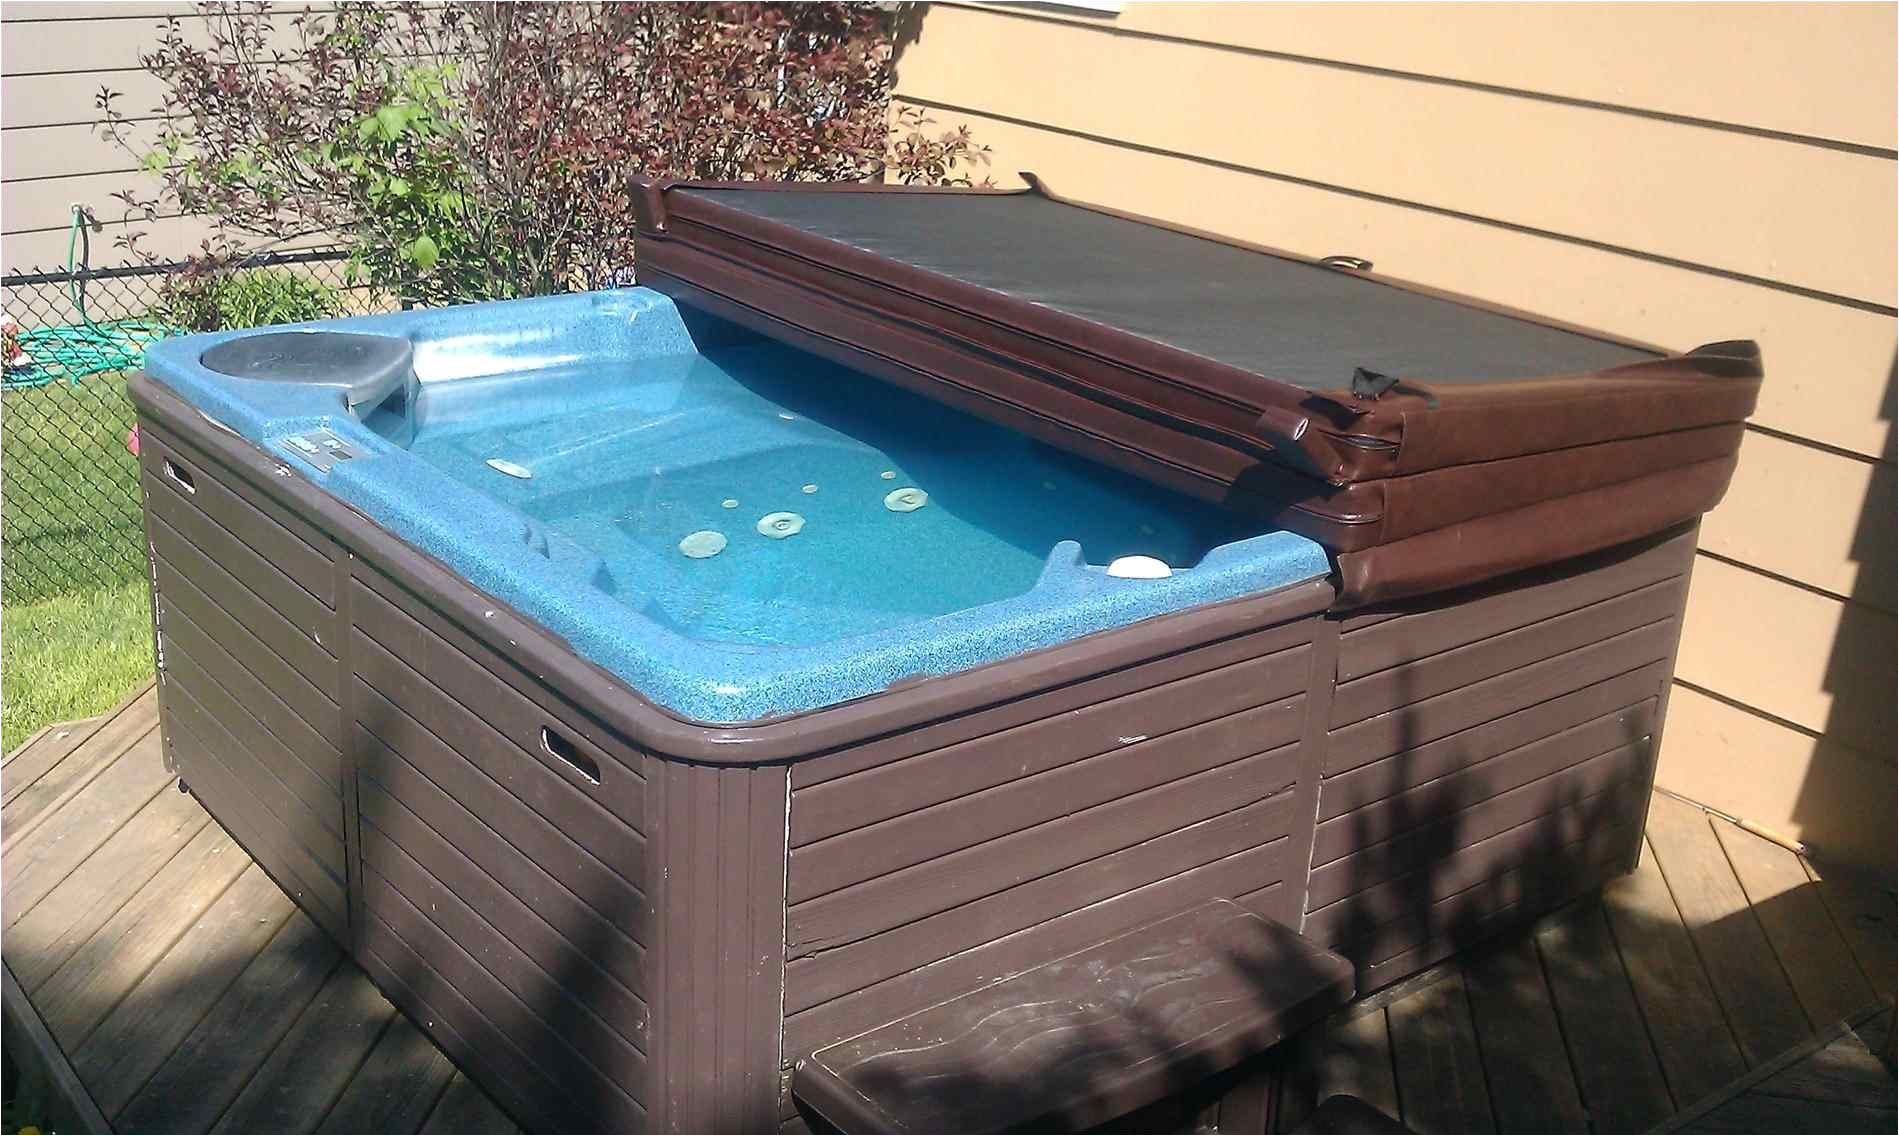 elegant costco jacuzzi with remarkable design and feature for outdoor or indoor bathroom